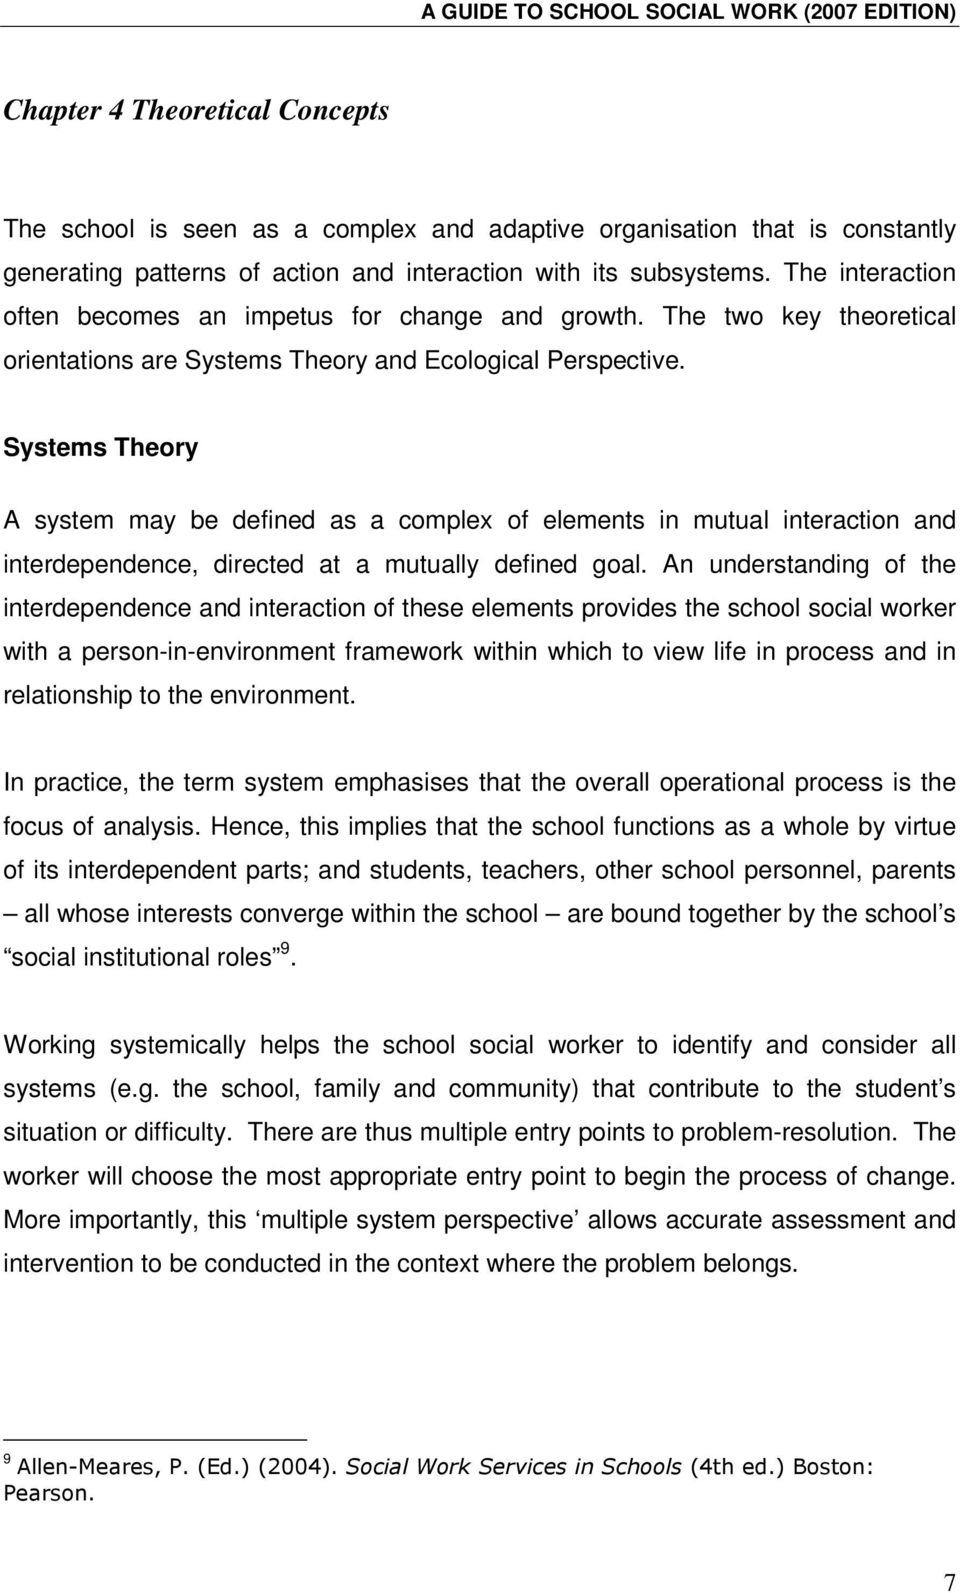 Systems Theory A system may be defined as a complex of elements in mutual interaction and interdependence, directed at a mutually defined goal.